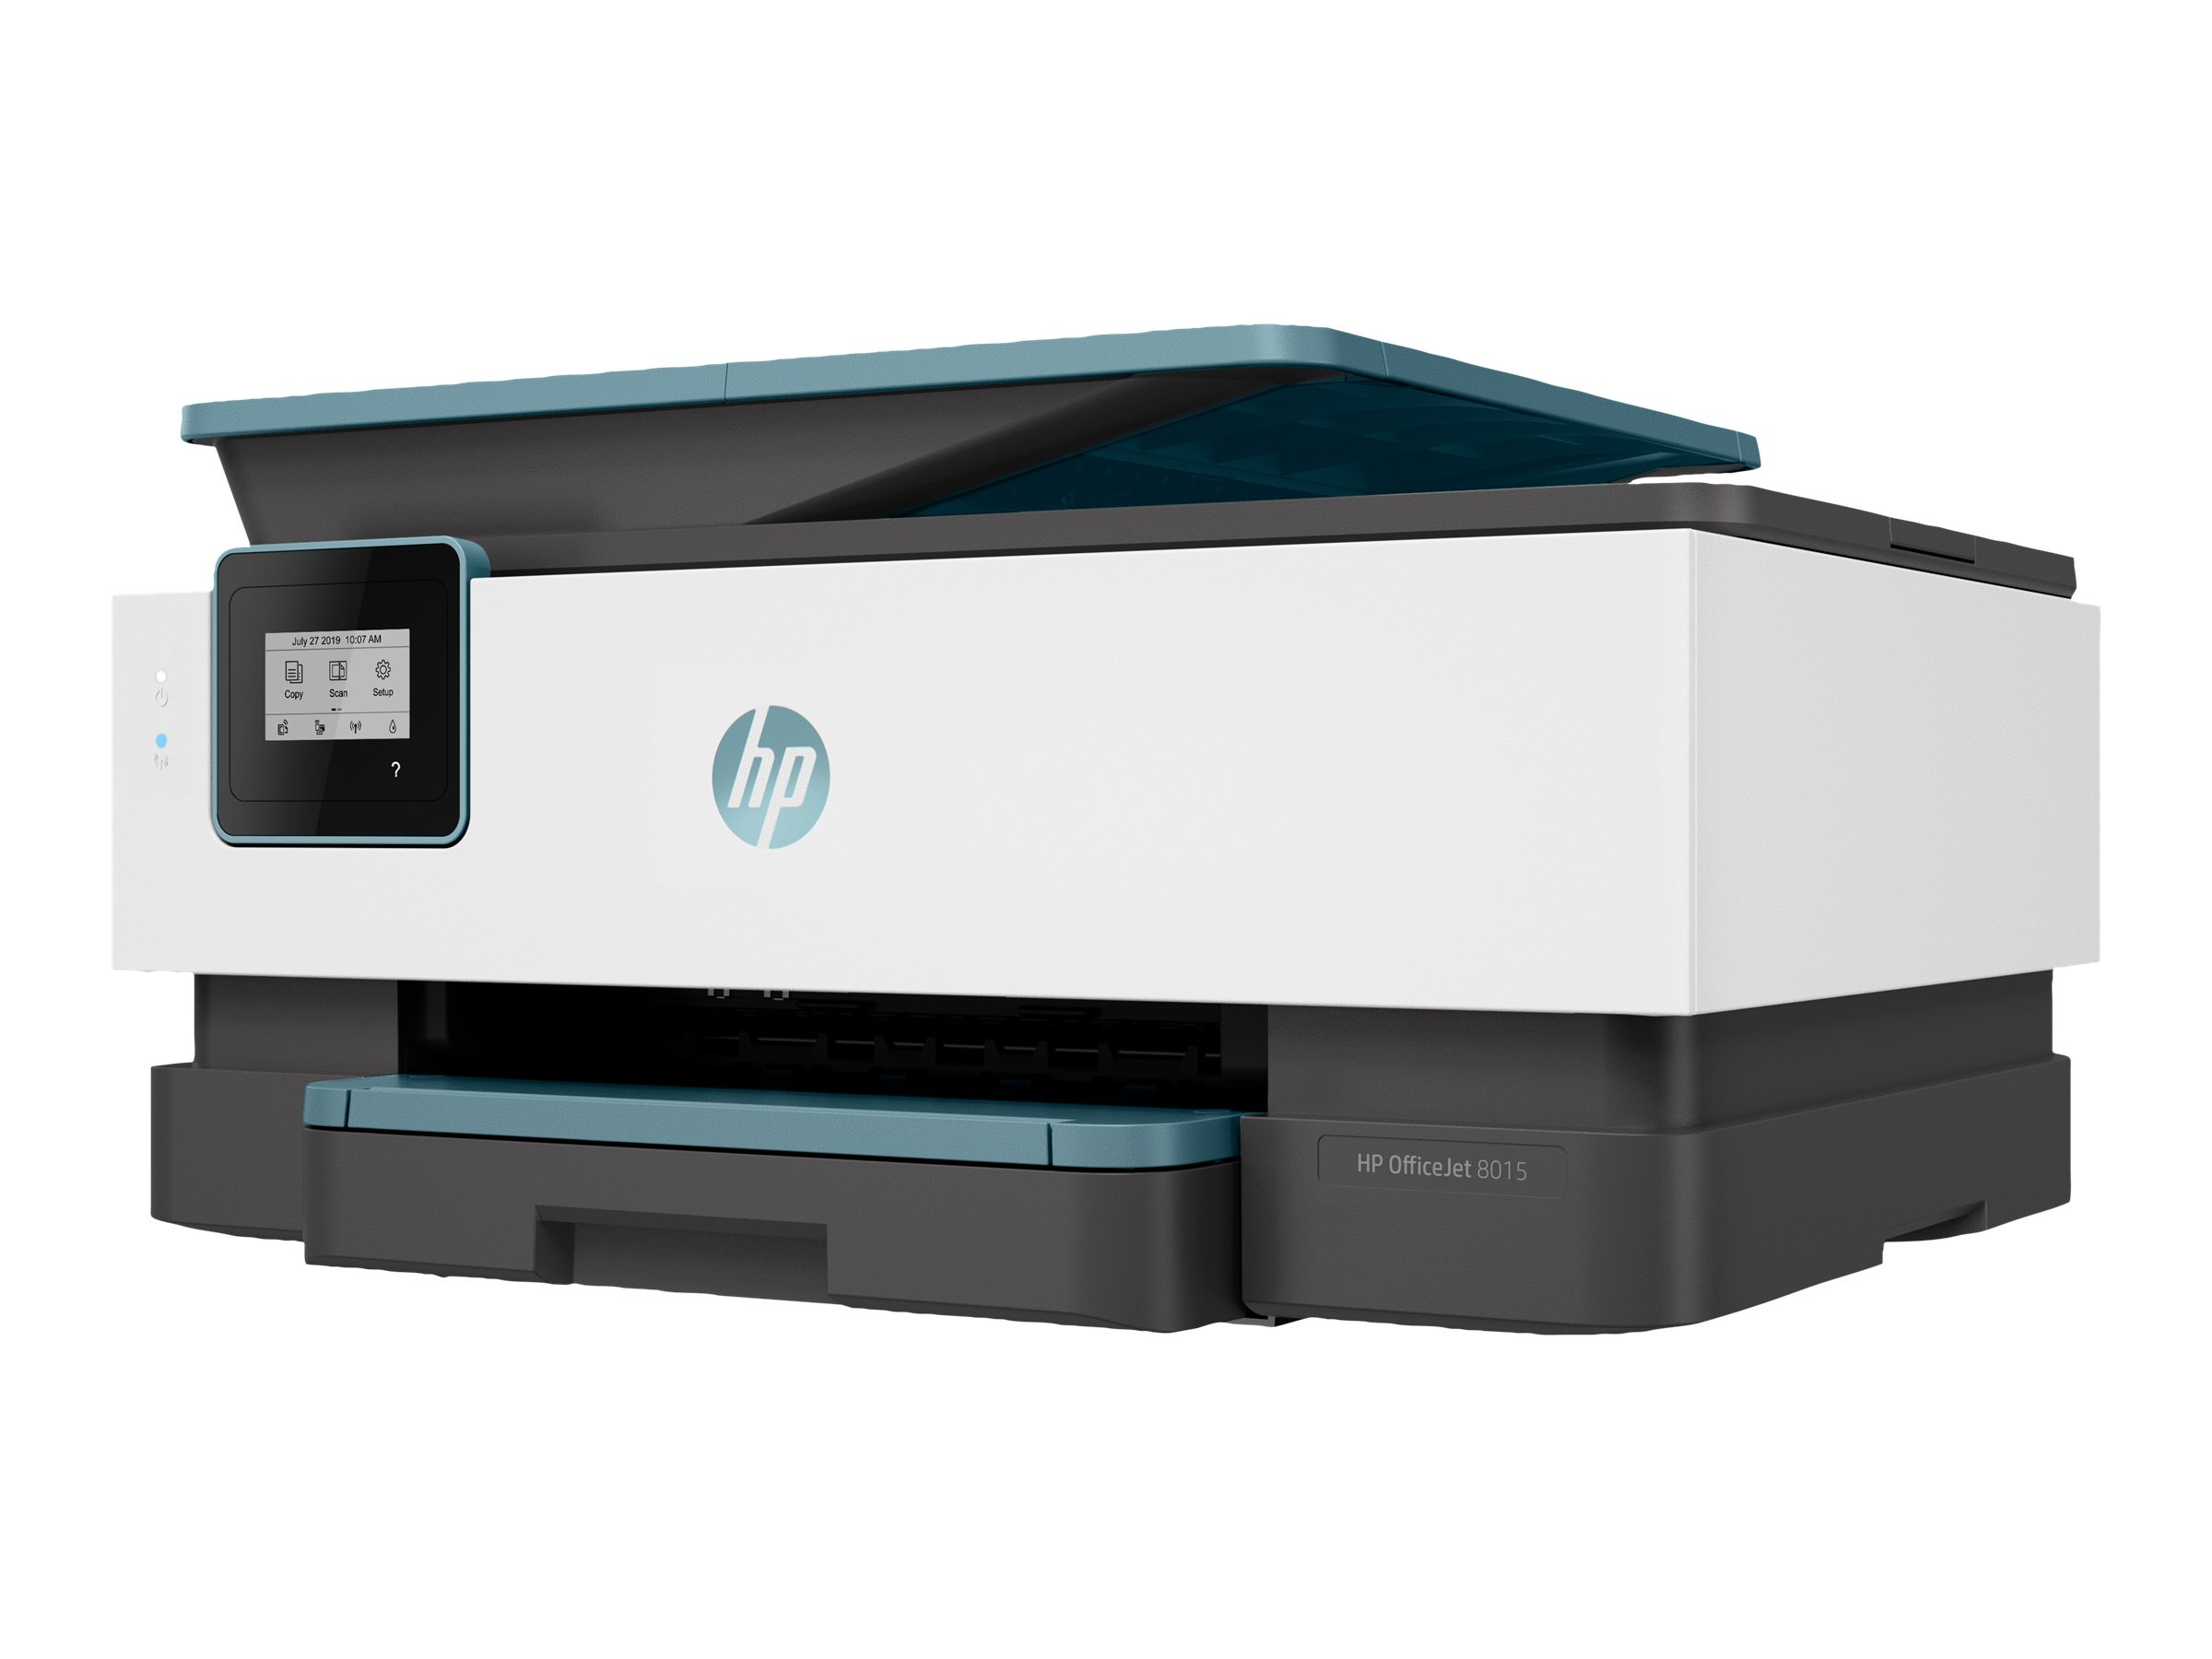 HP Officejet 8015 All-in-One - Multifunktionsdrucker - Farbe - Tintenstrahl - A4 (210 x 297 mm), Legal (216 x 356 mm) (Original)